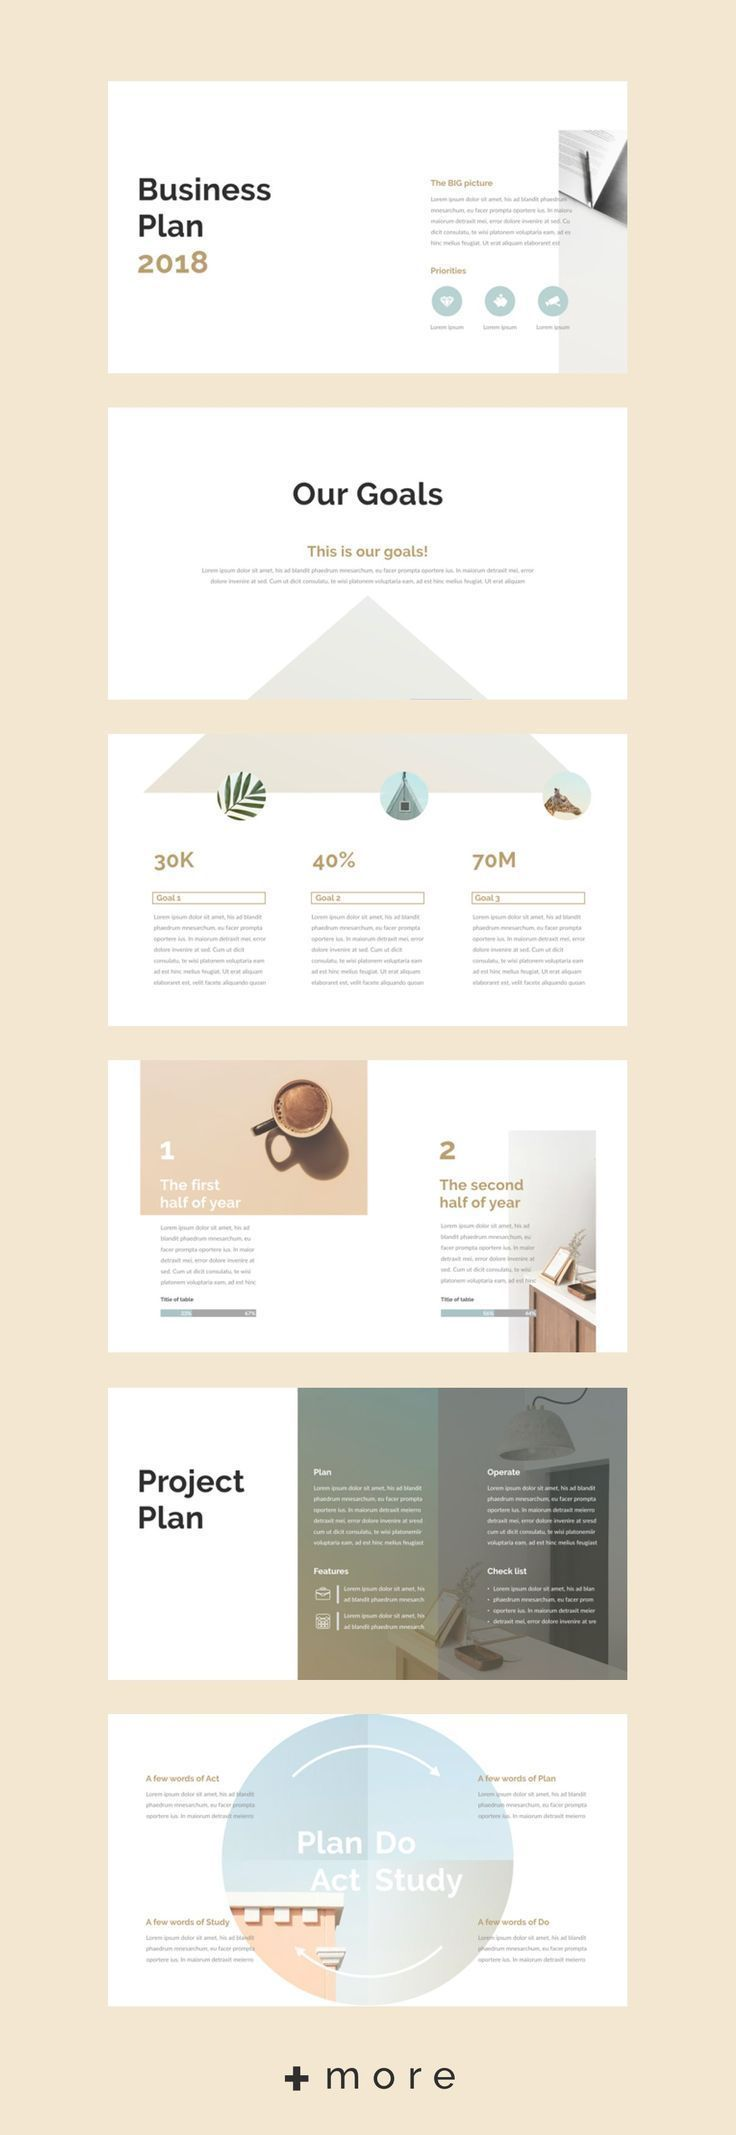 Planner keynote template simple business plan presentation design planner keynote template simple business plan presentation design and keynote accmission Image collections